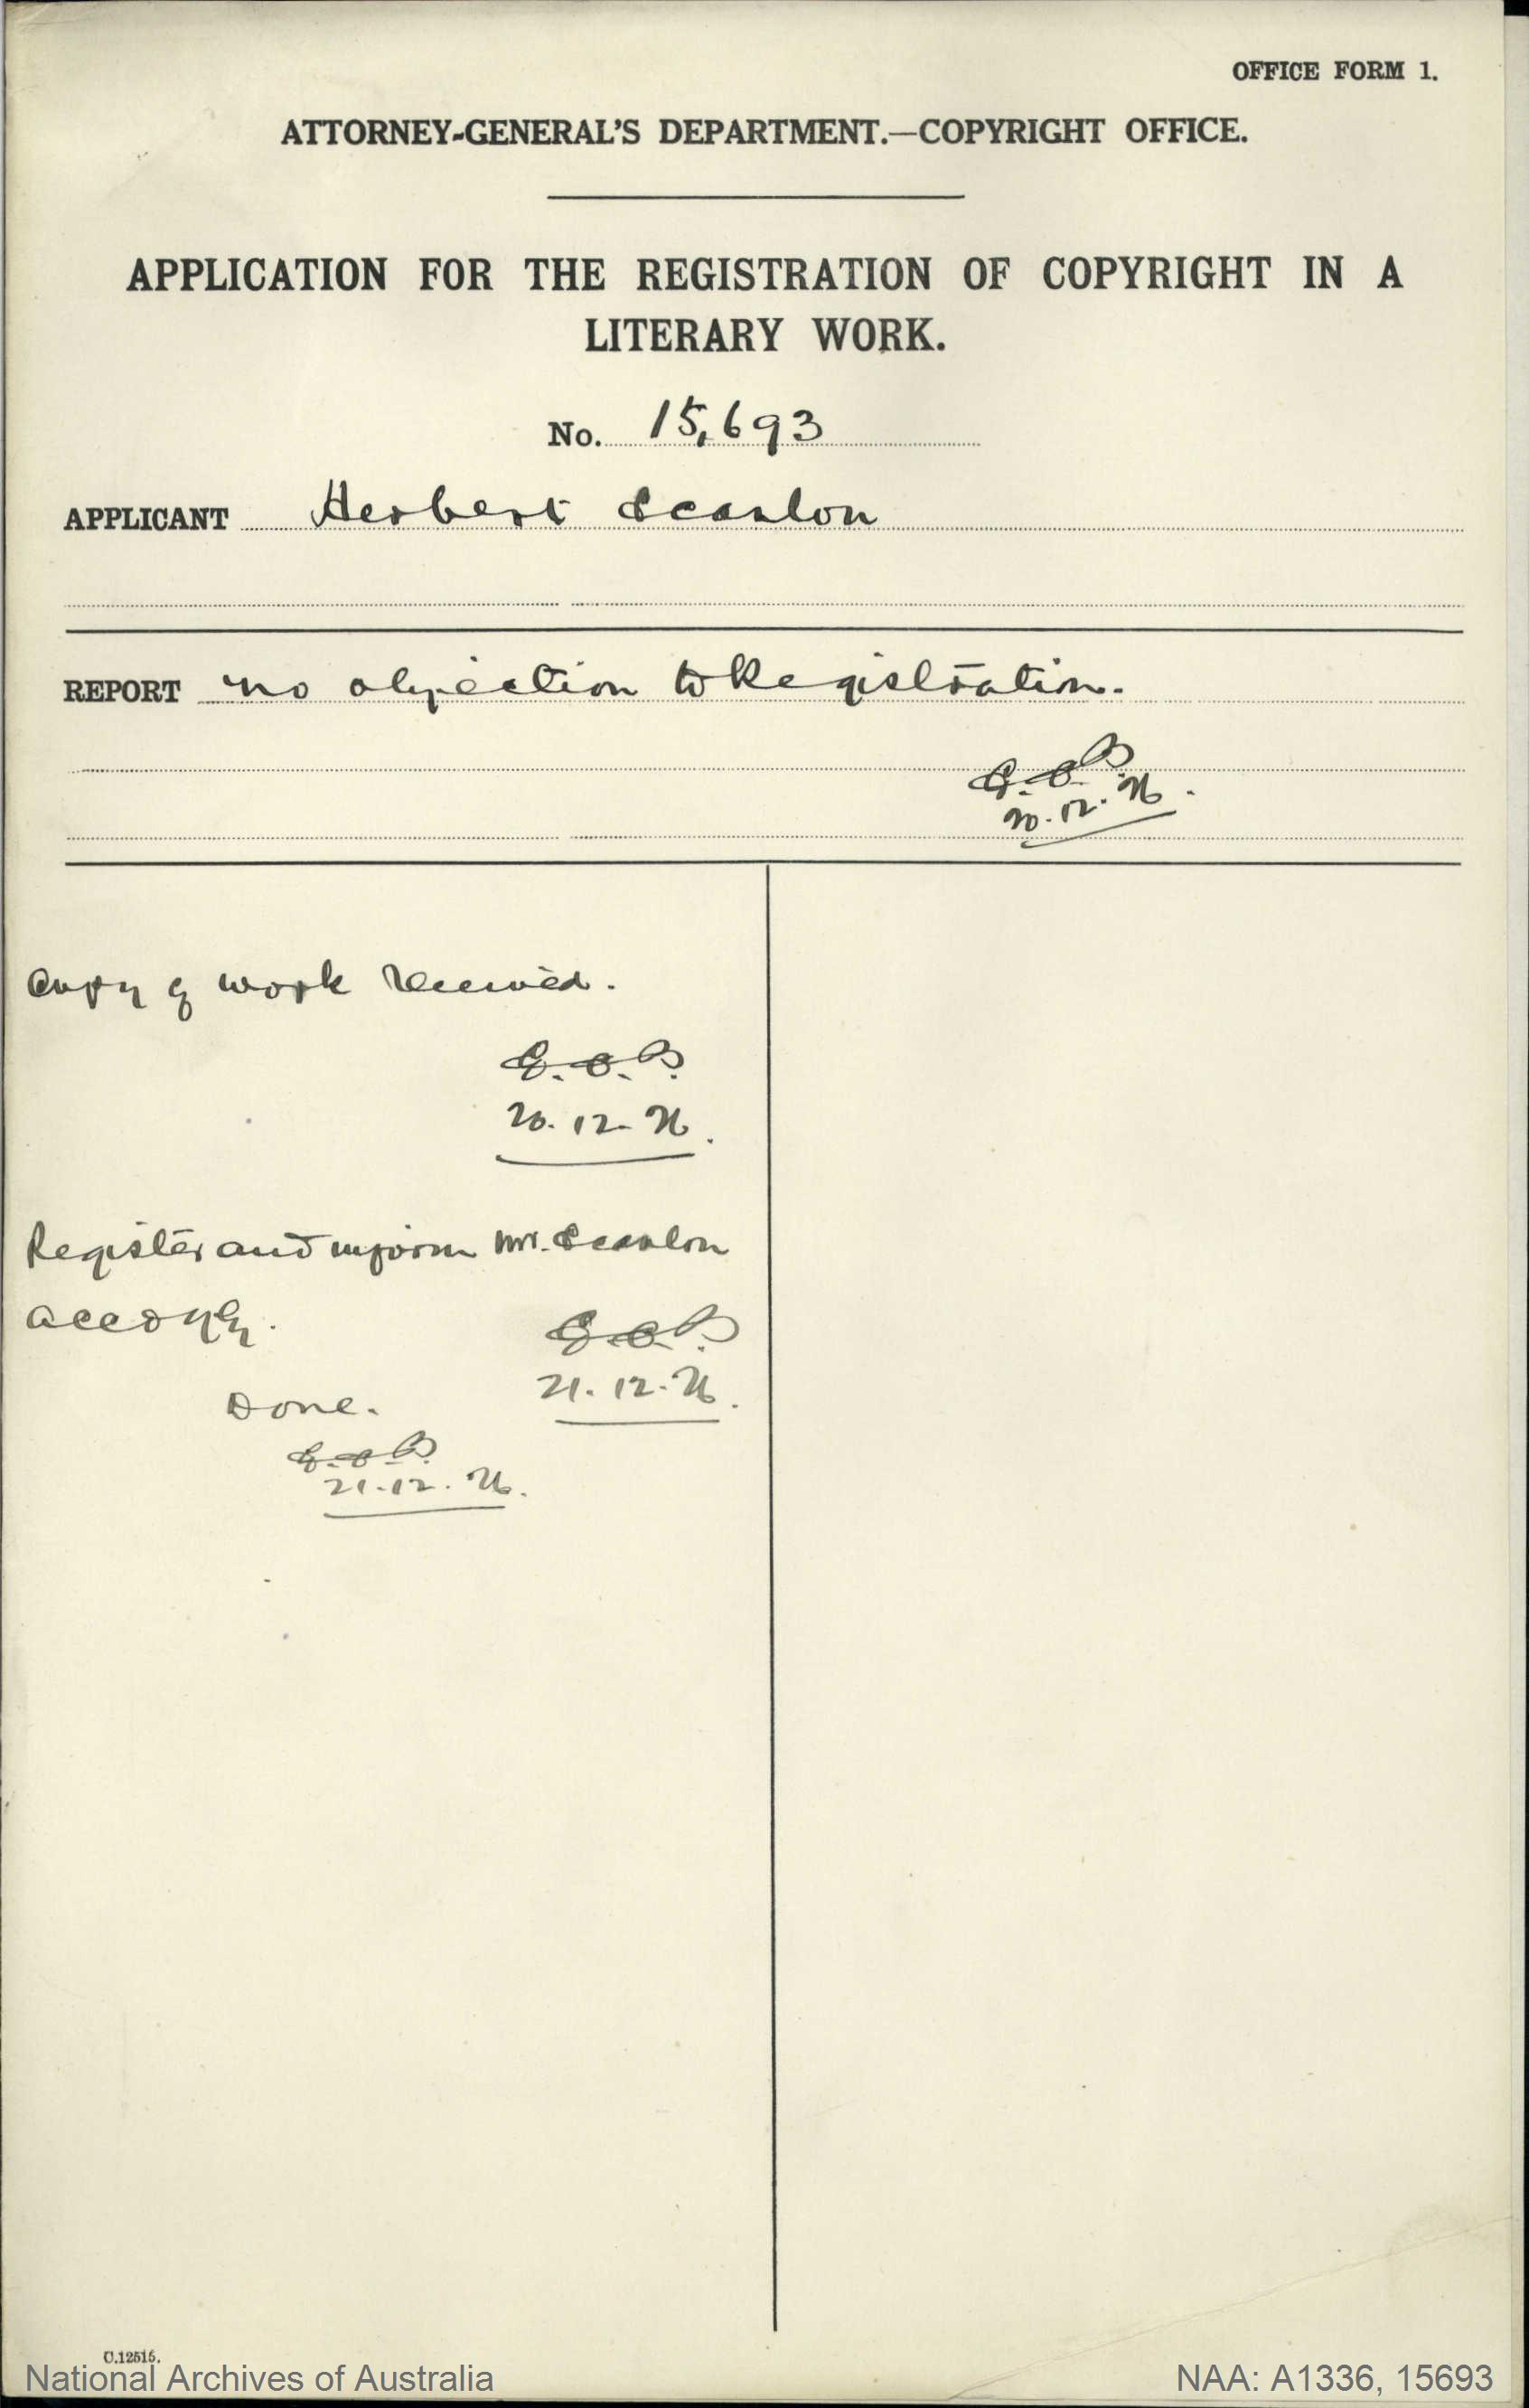 AUTHOR Herbert Scanlon : ADDRESS Sydney : TITLE OF WORK Much in Little Digger Stories (No 2) : TYPE OF WORK Literary : APPLICANT Herbert Scanlon : DATE OF APPLICATION 20 Dec 1926 : DATE COPYRIGHT REGISTERED 21 Dec 1926 : WORK ENCLOSED? [Yes]